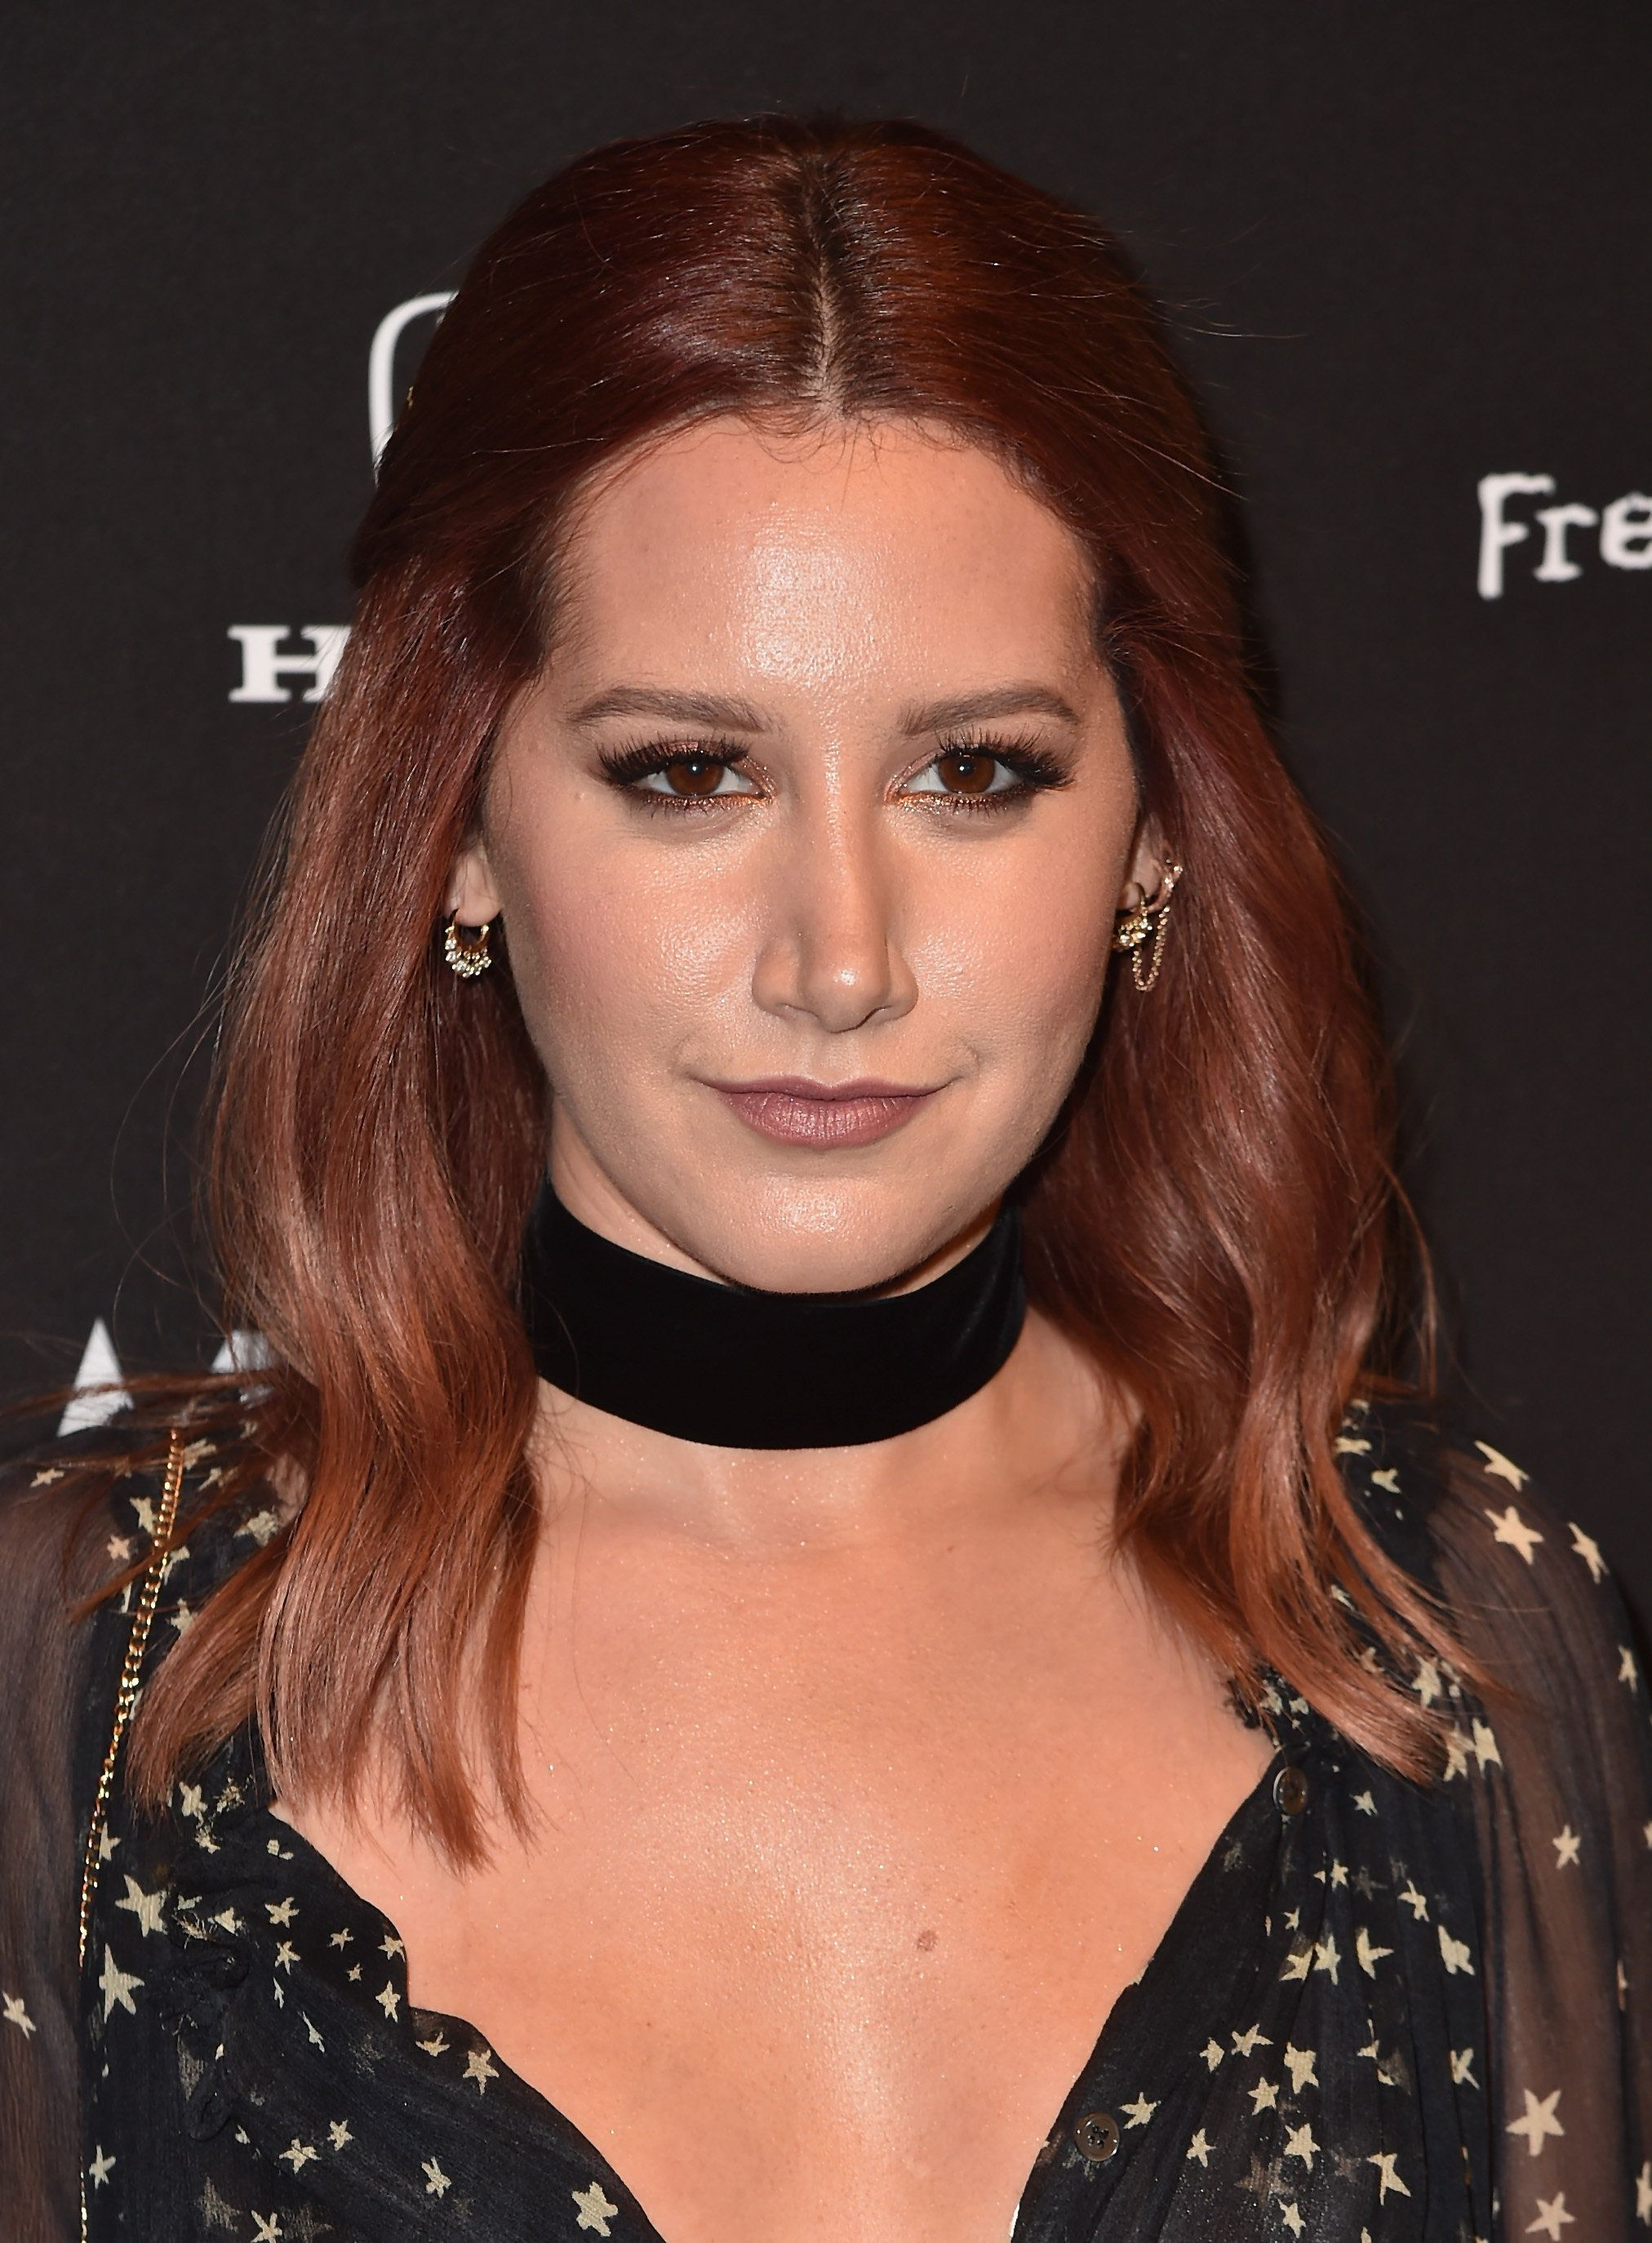 LOS ANGELES, CA - OCTOBER 19:  Actress Ashley Tisdale attends the Guitar Hero Live Launch Party at YouTube Space LA on October 19, 2015 in Los Angeles, California.  (Photo by Alberto E. Rodriguez/Getty Images)